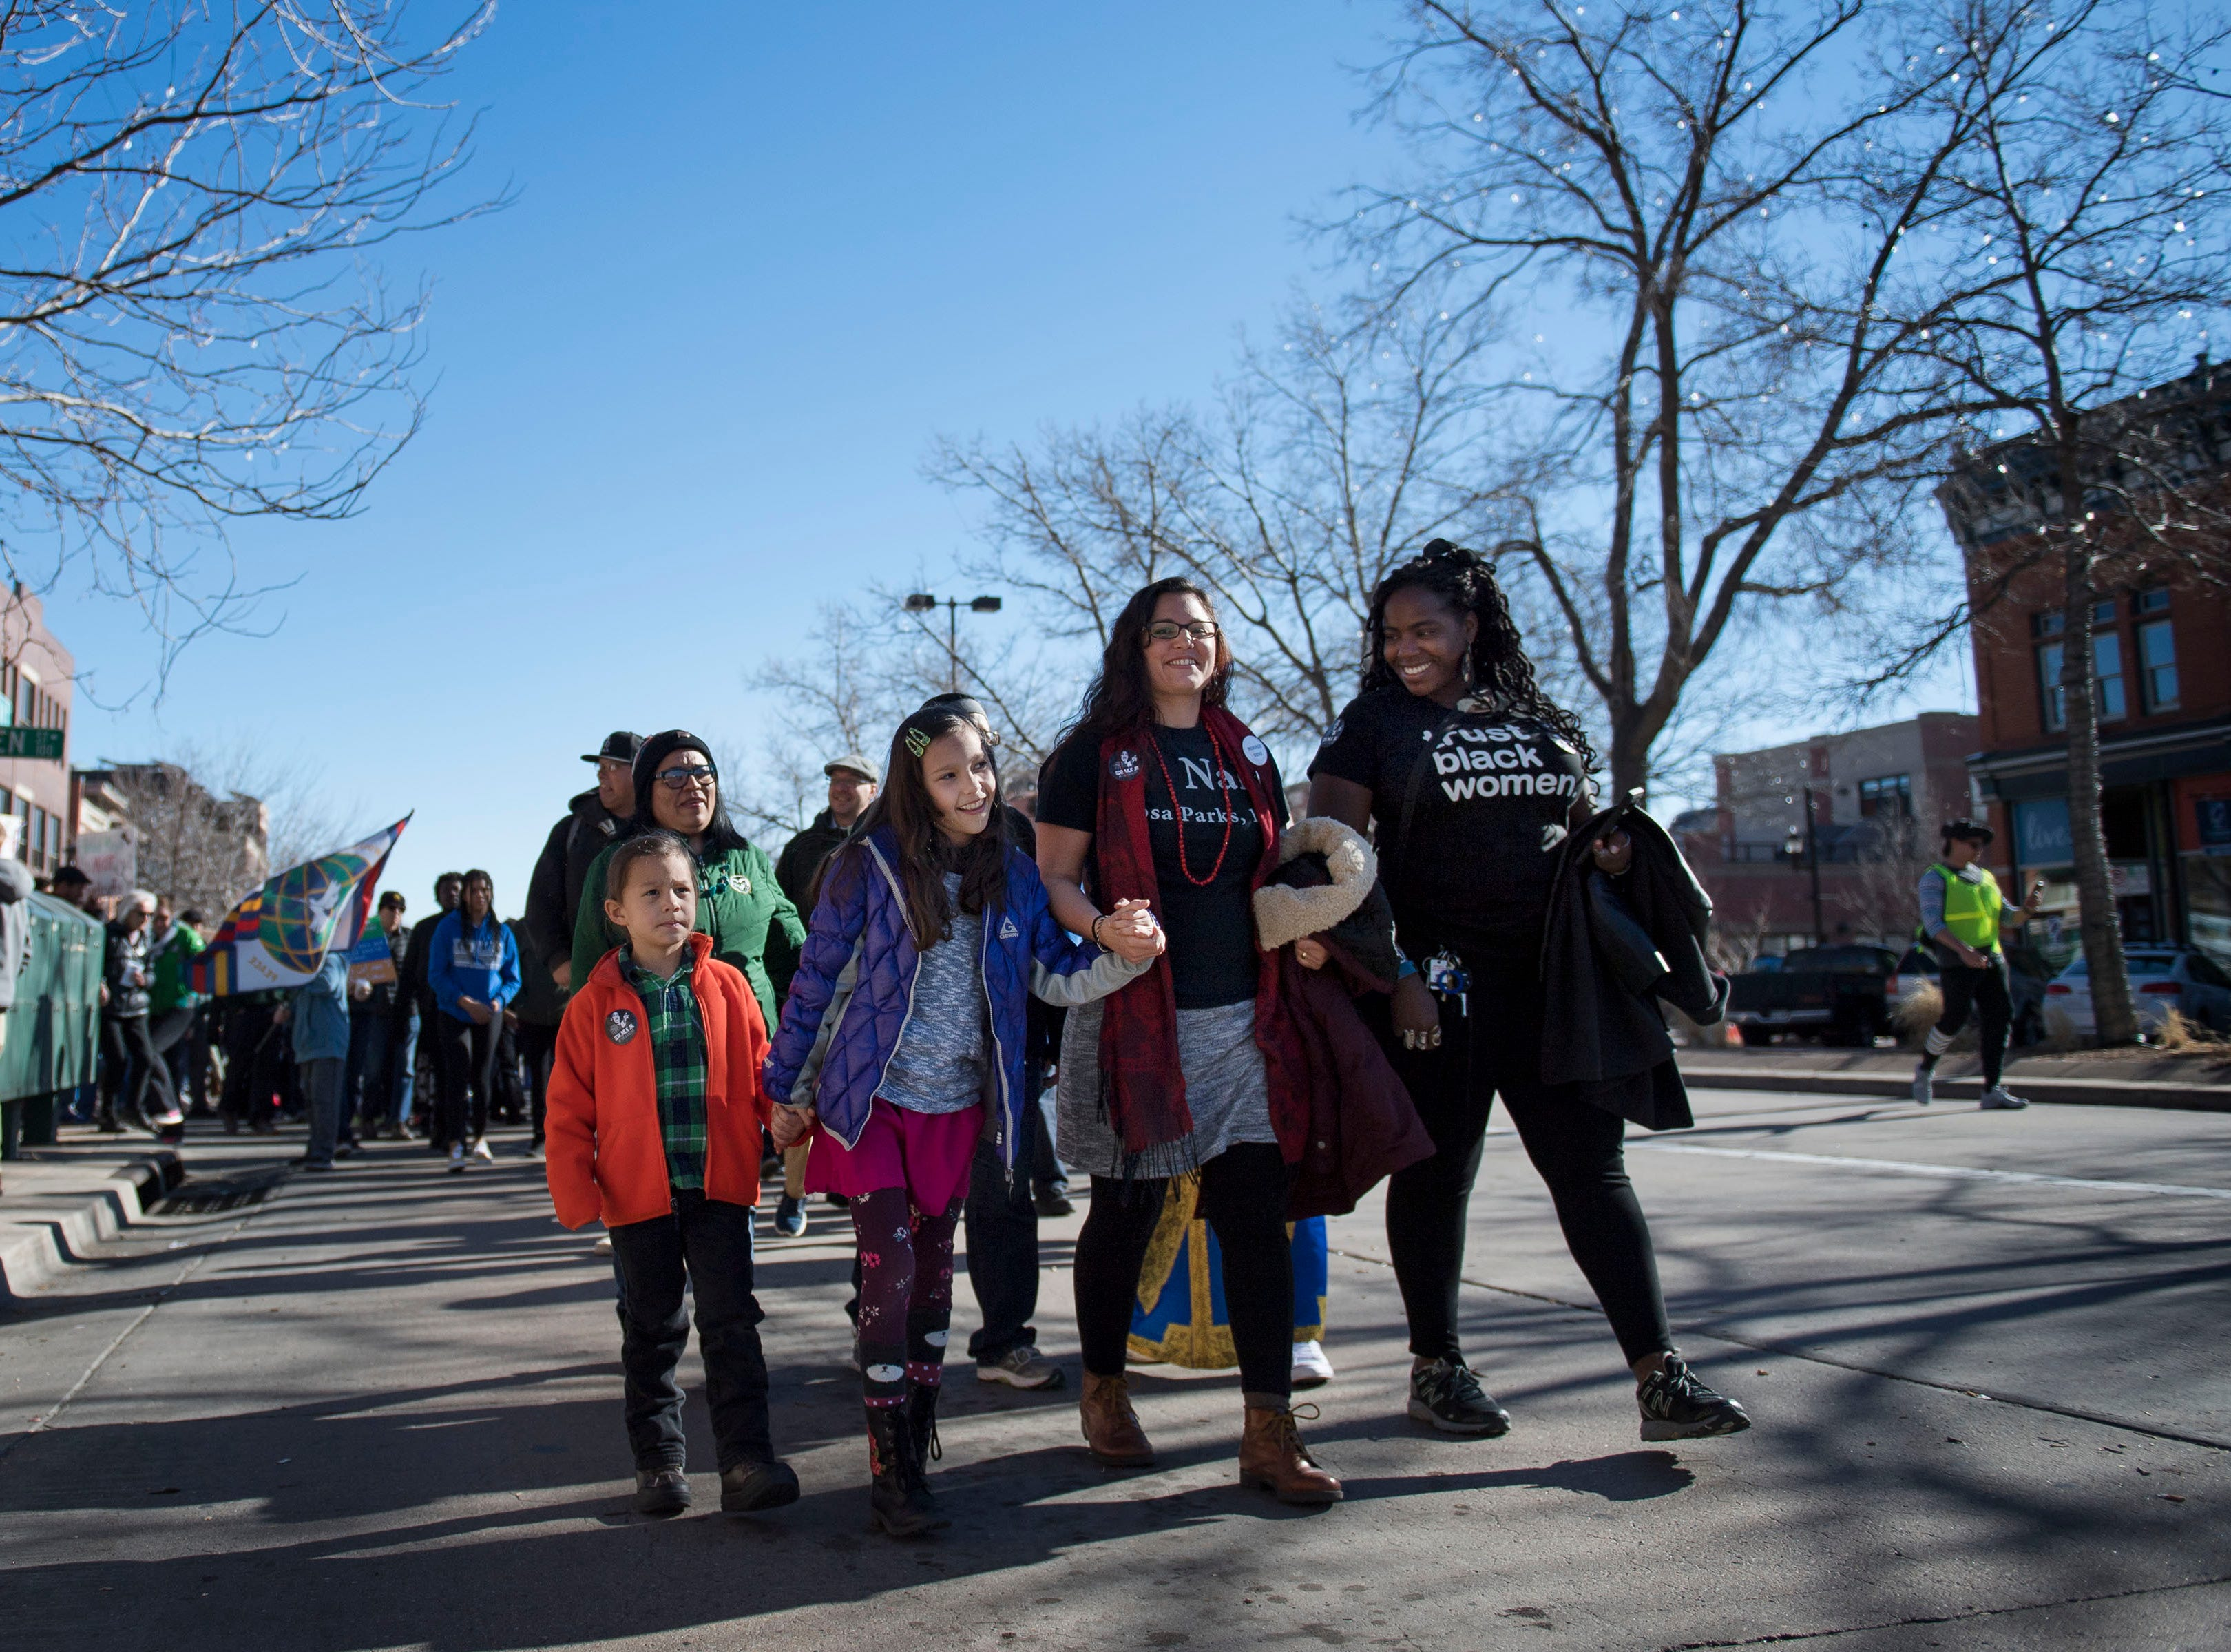 March leader Dominique David-Chavez, third from left, leads the march with her son Miguel, 4, daughter Lillie, 9, and Dr. Melissa Edwards during the Dr. Martin Luther King, Jr. March & Celebration on Monday, Jan. 21, 2019, in Fort Collins, Colo.